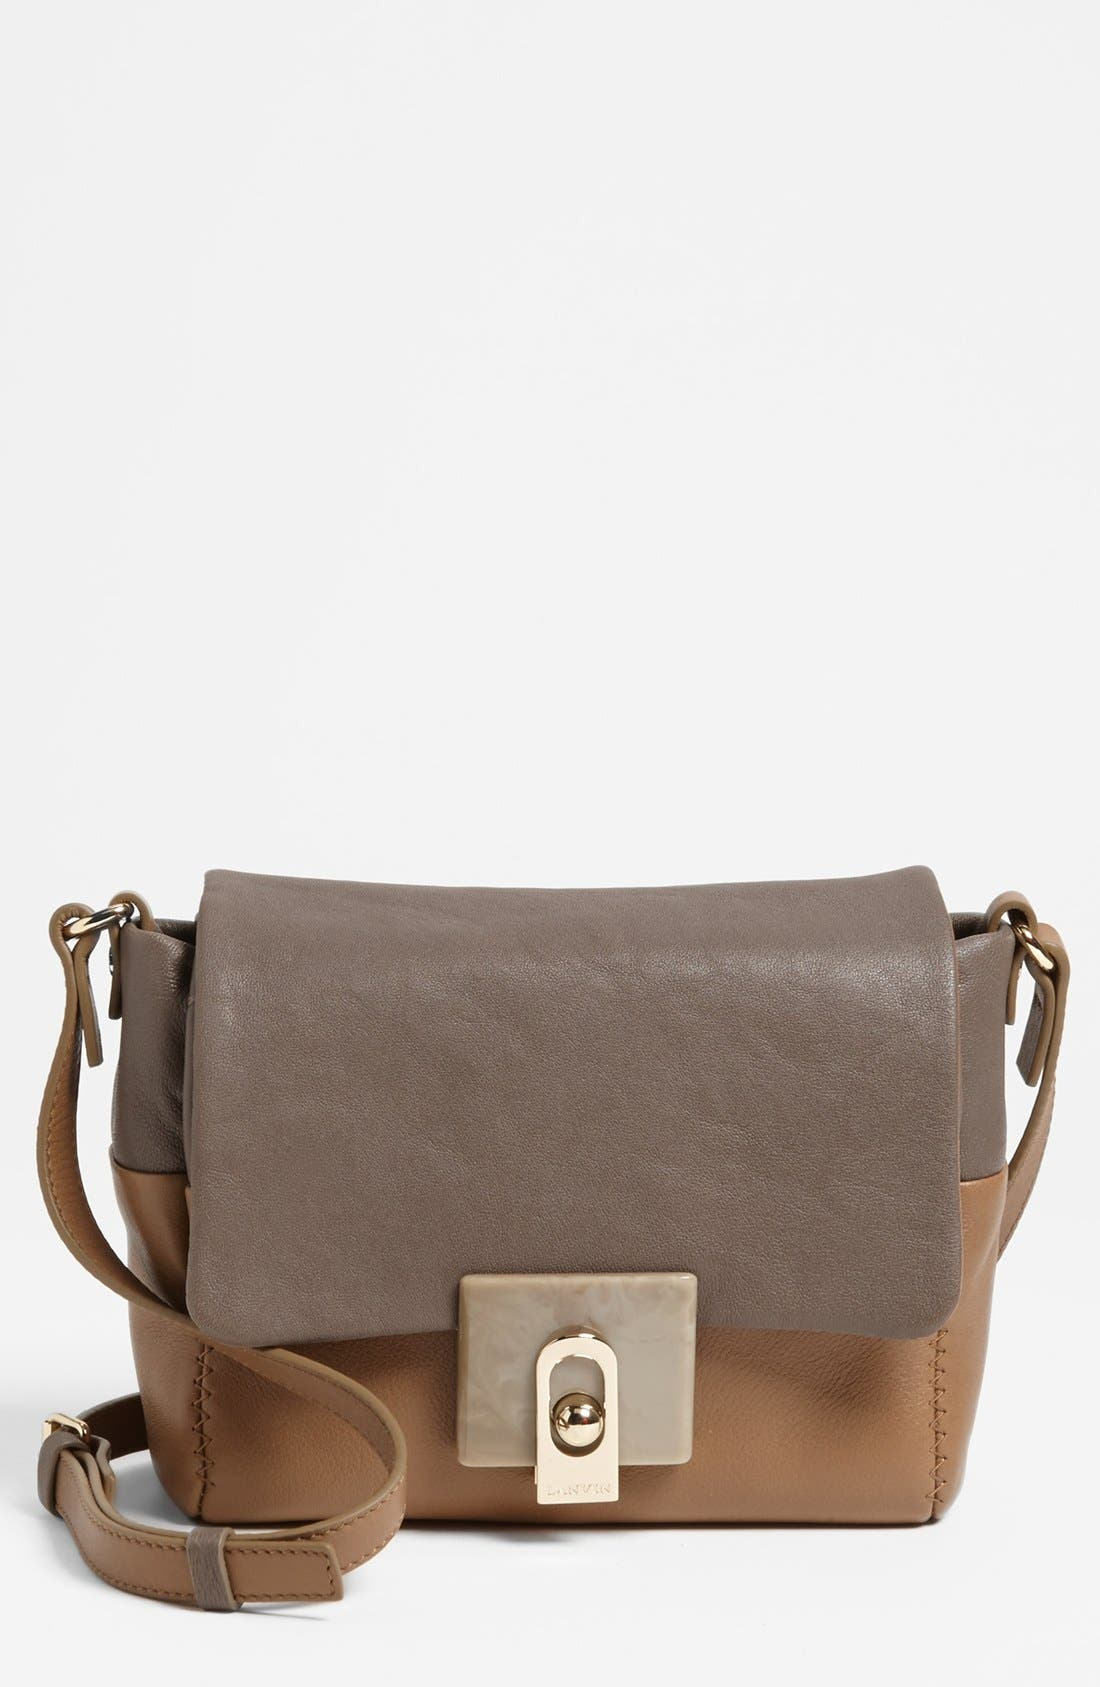 Main Image - Lanvin 'For Me' Leather Crossbody Bag